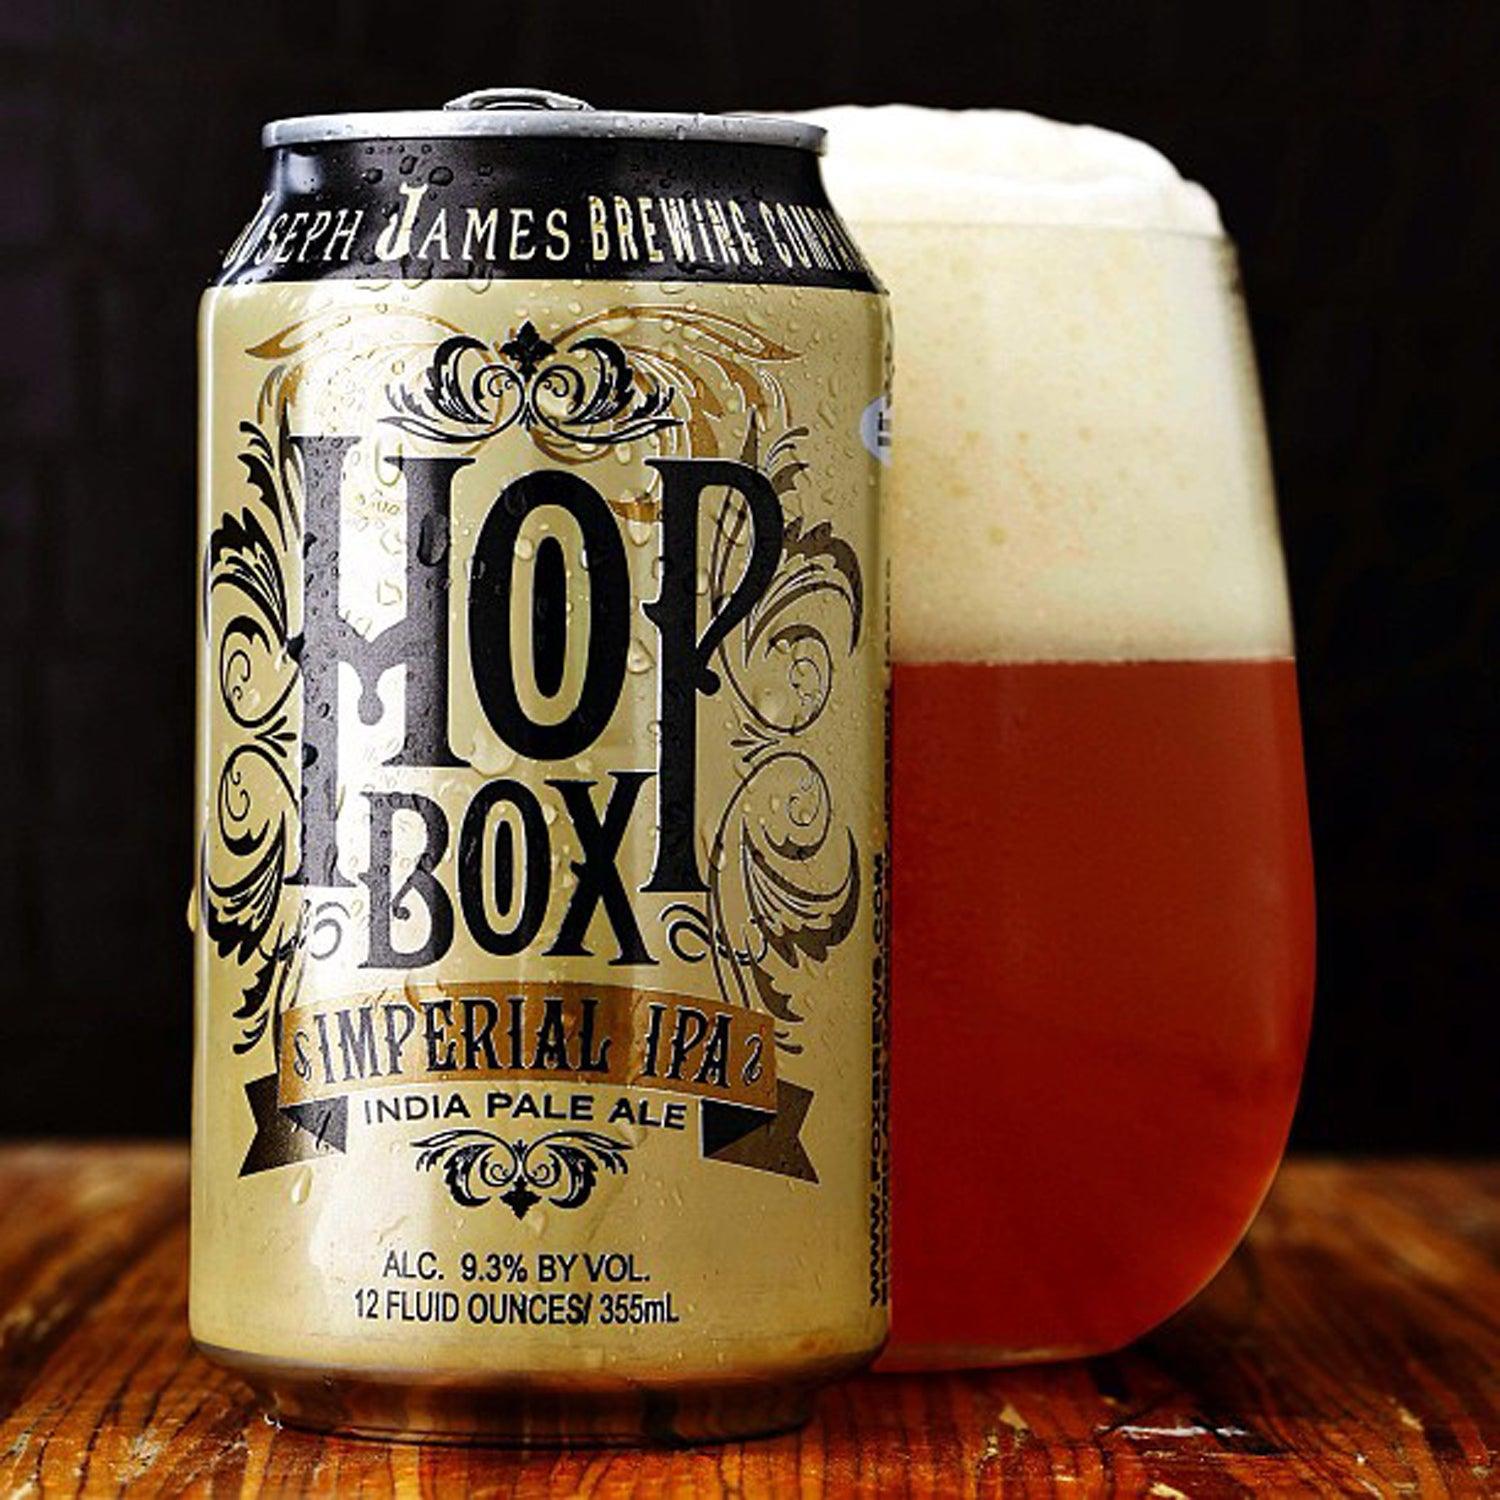 Joseph James Brewing hop box imperial ipa outside canned beer fall hiking or camping